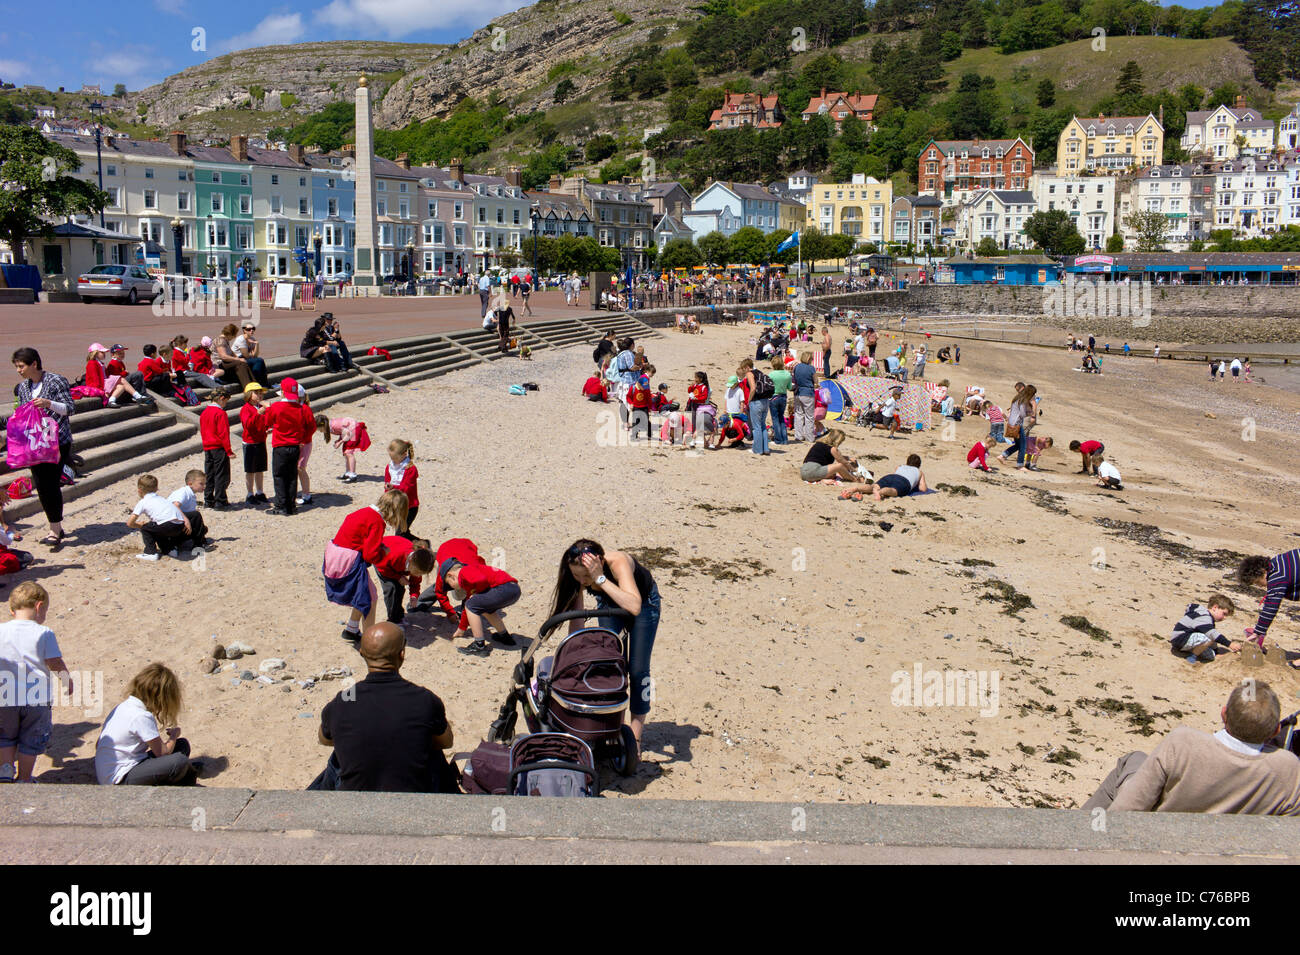 A party of school children visit Llandudno beach, with teachers and assistants, mingle with visitors on a sunny - Stock Image